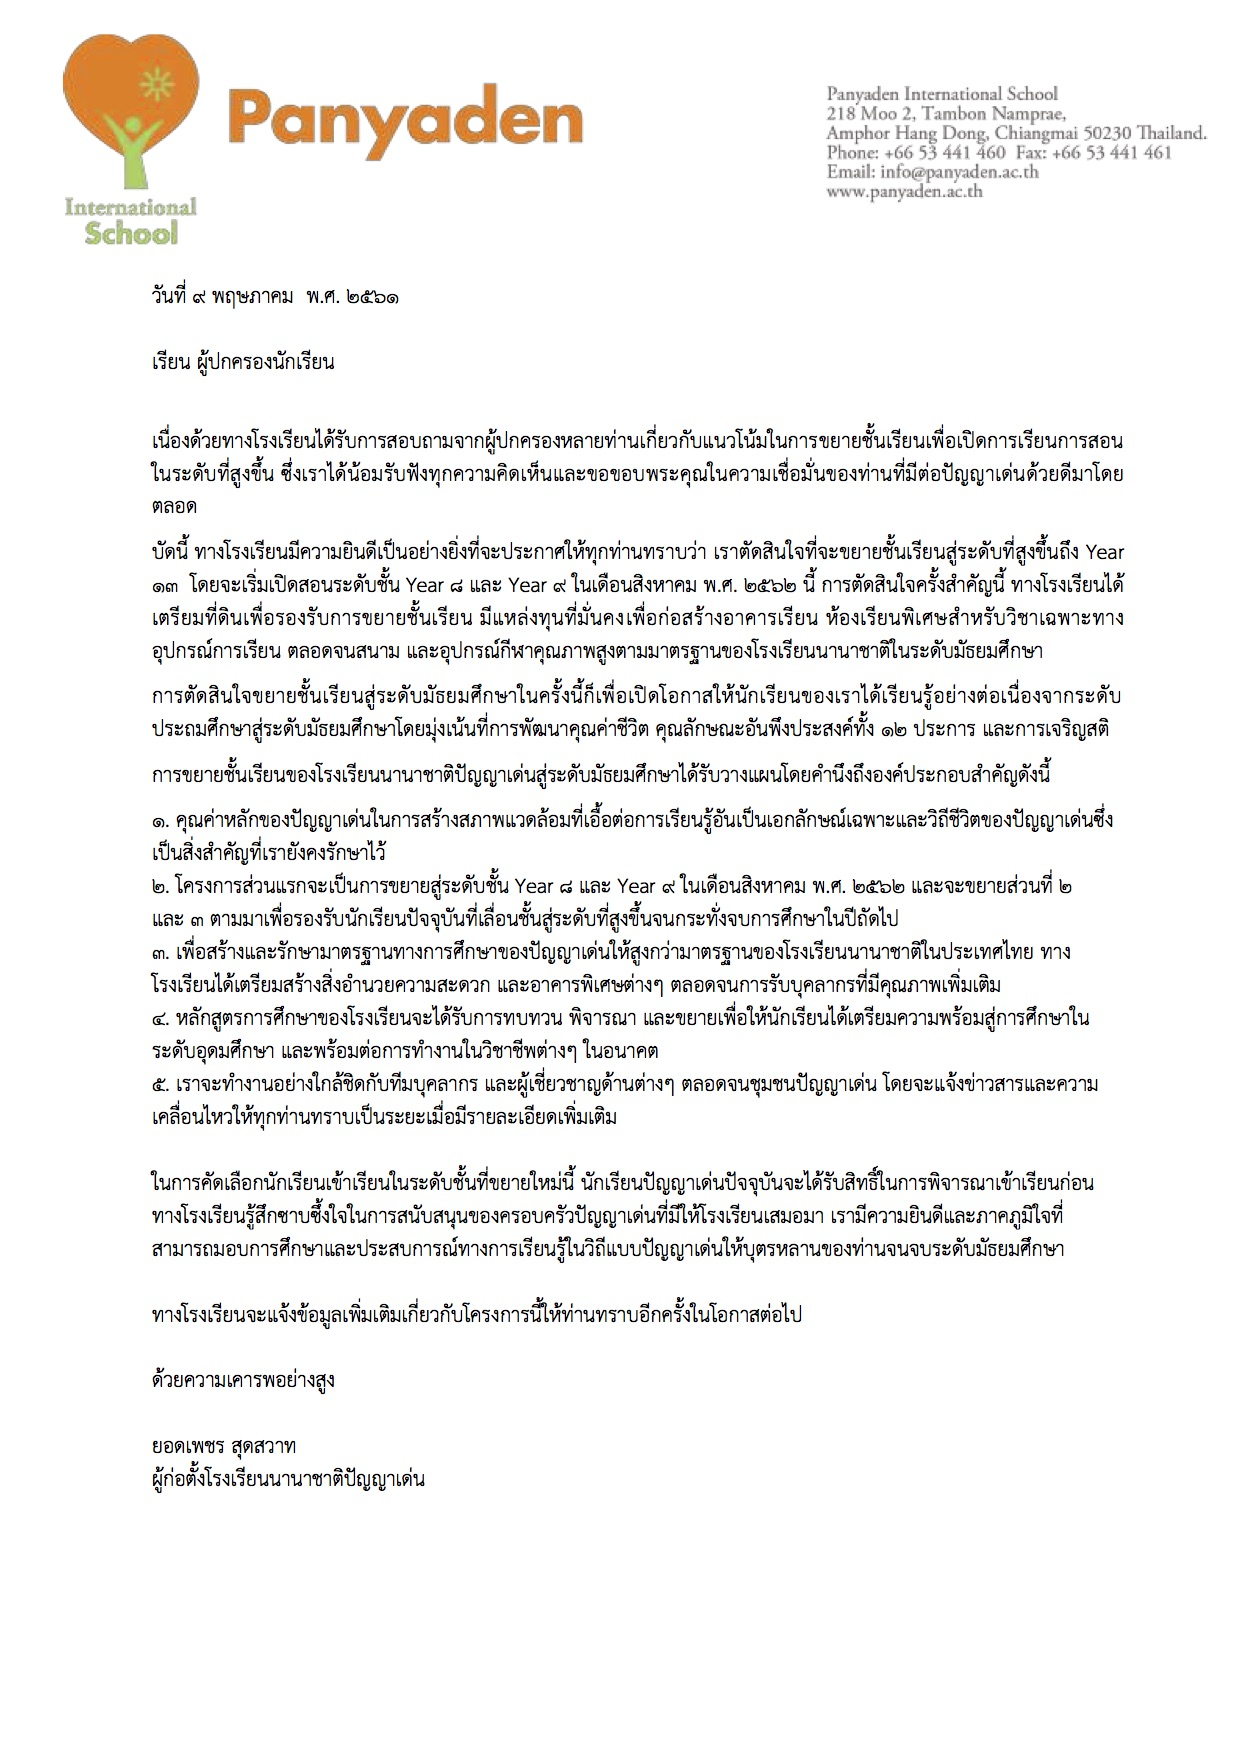 Panyaden Expansion Announcement to parents (in Thai)